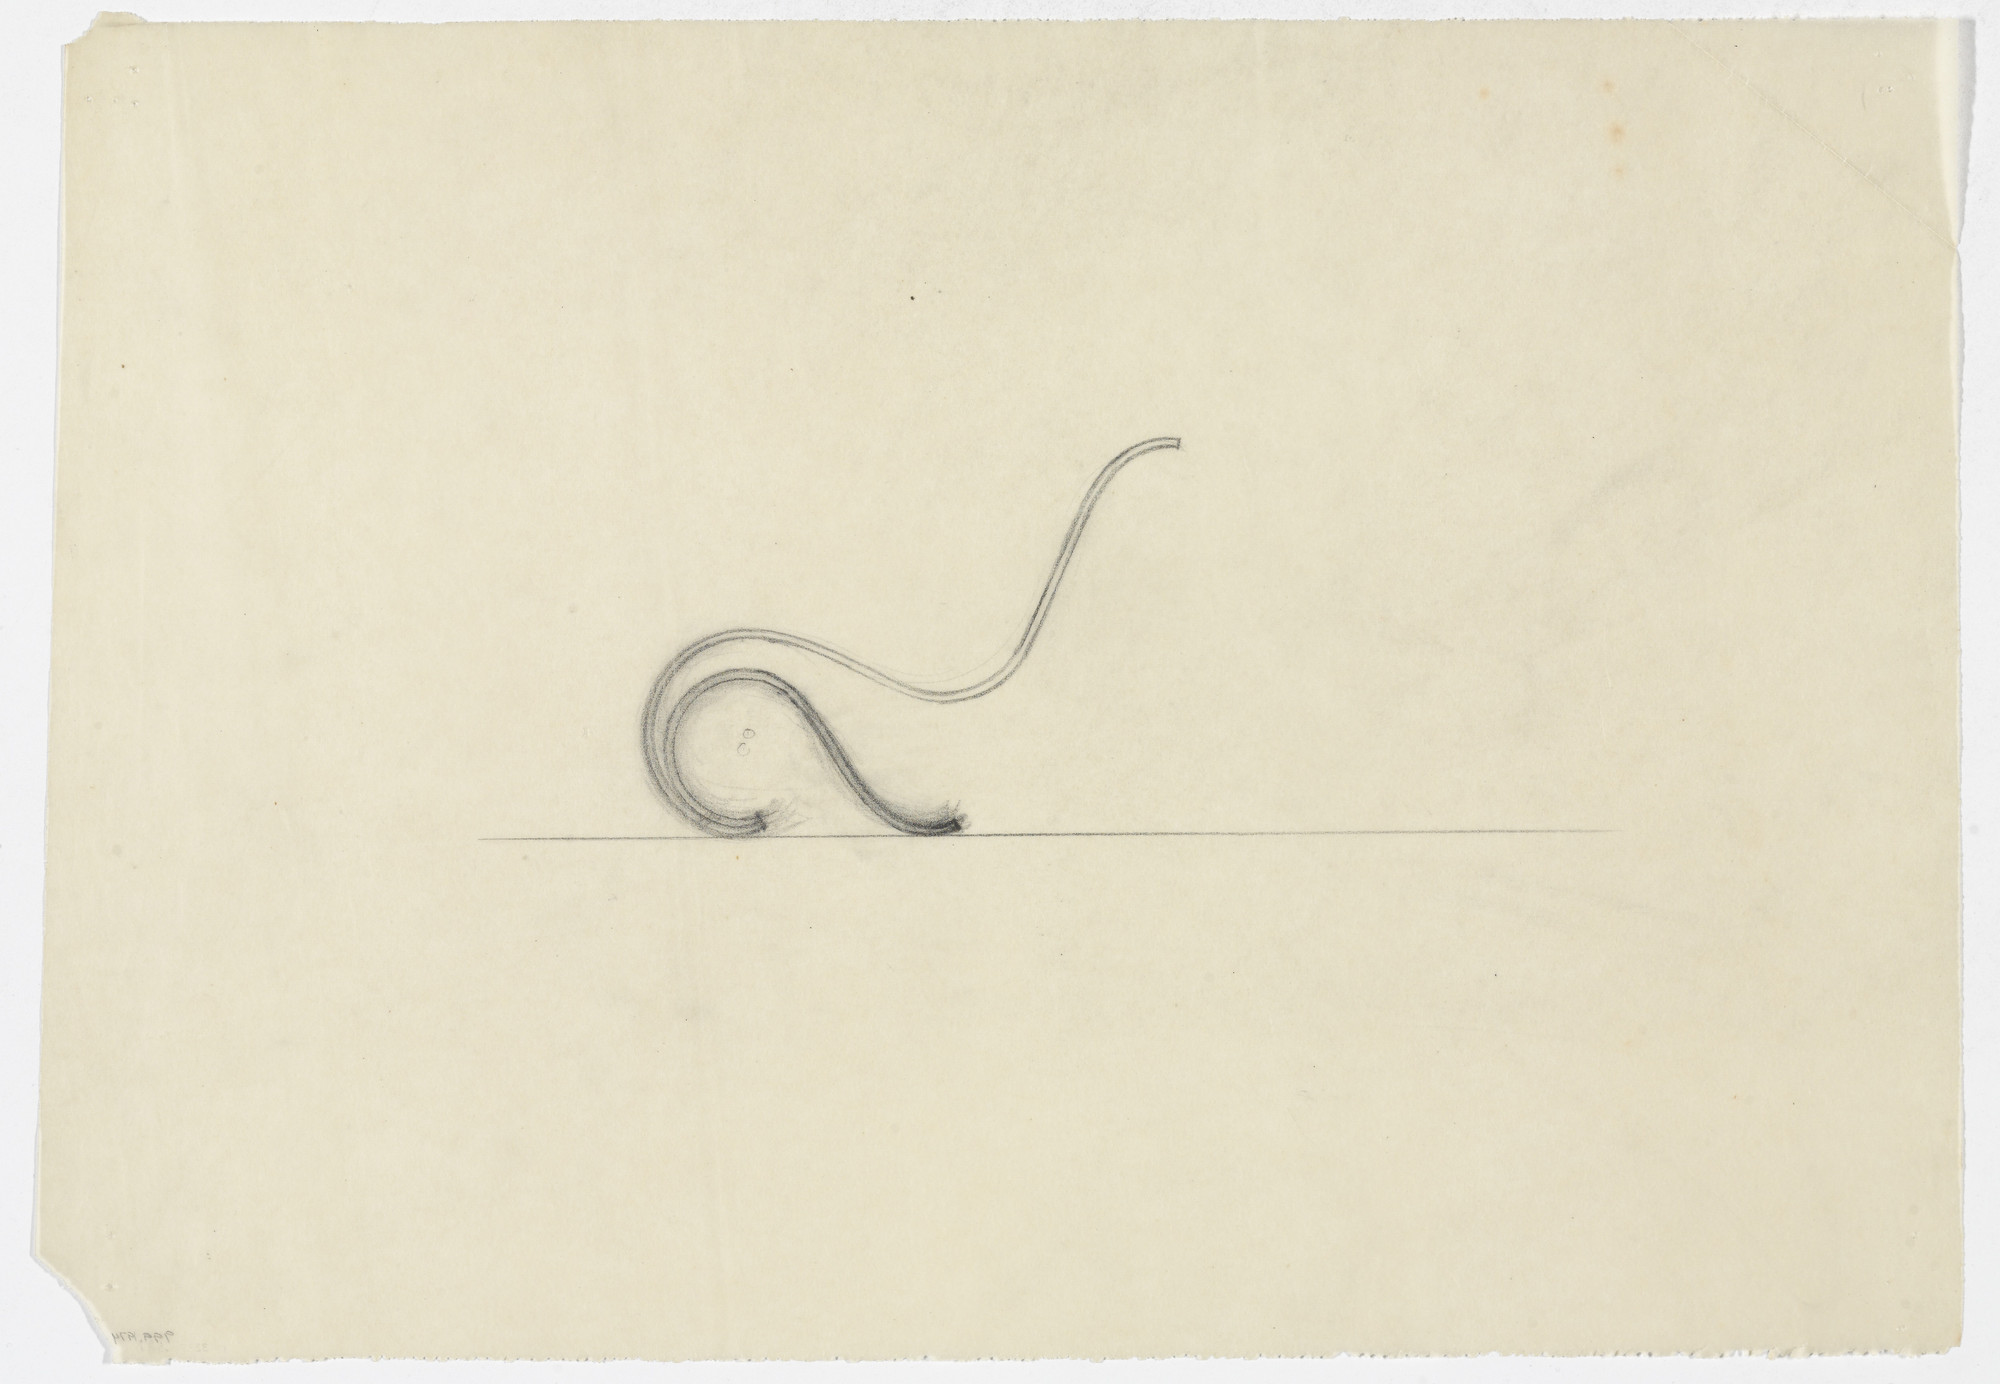 Ludwig Mies van der Rohe. Lounge Chair without Arms (Elevation sketch). 1933-1934